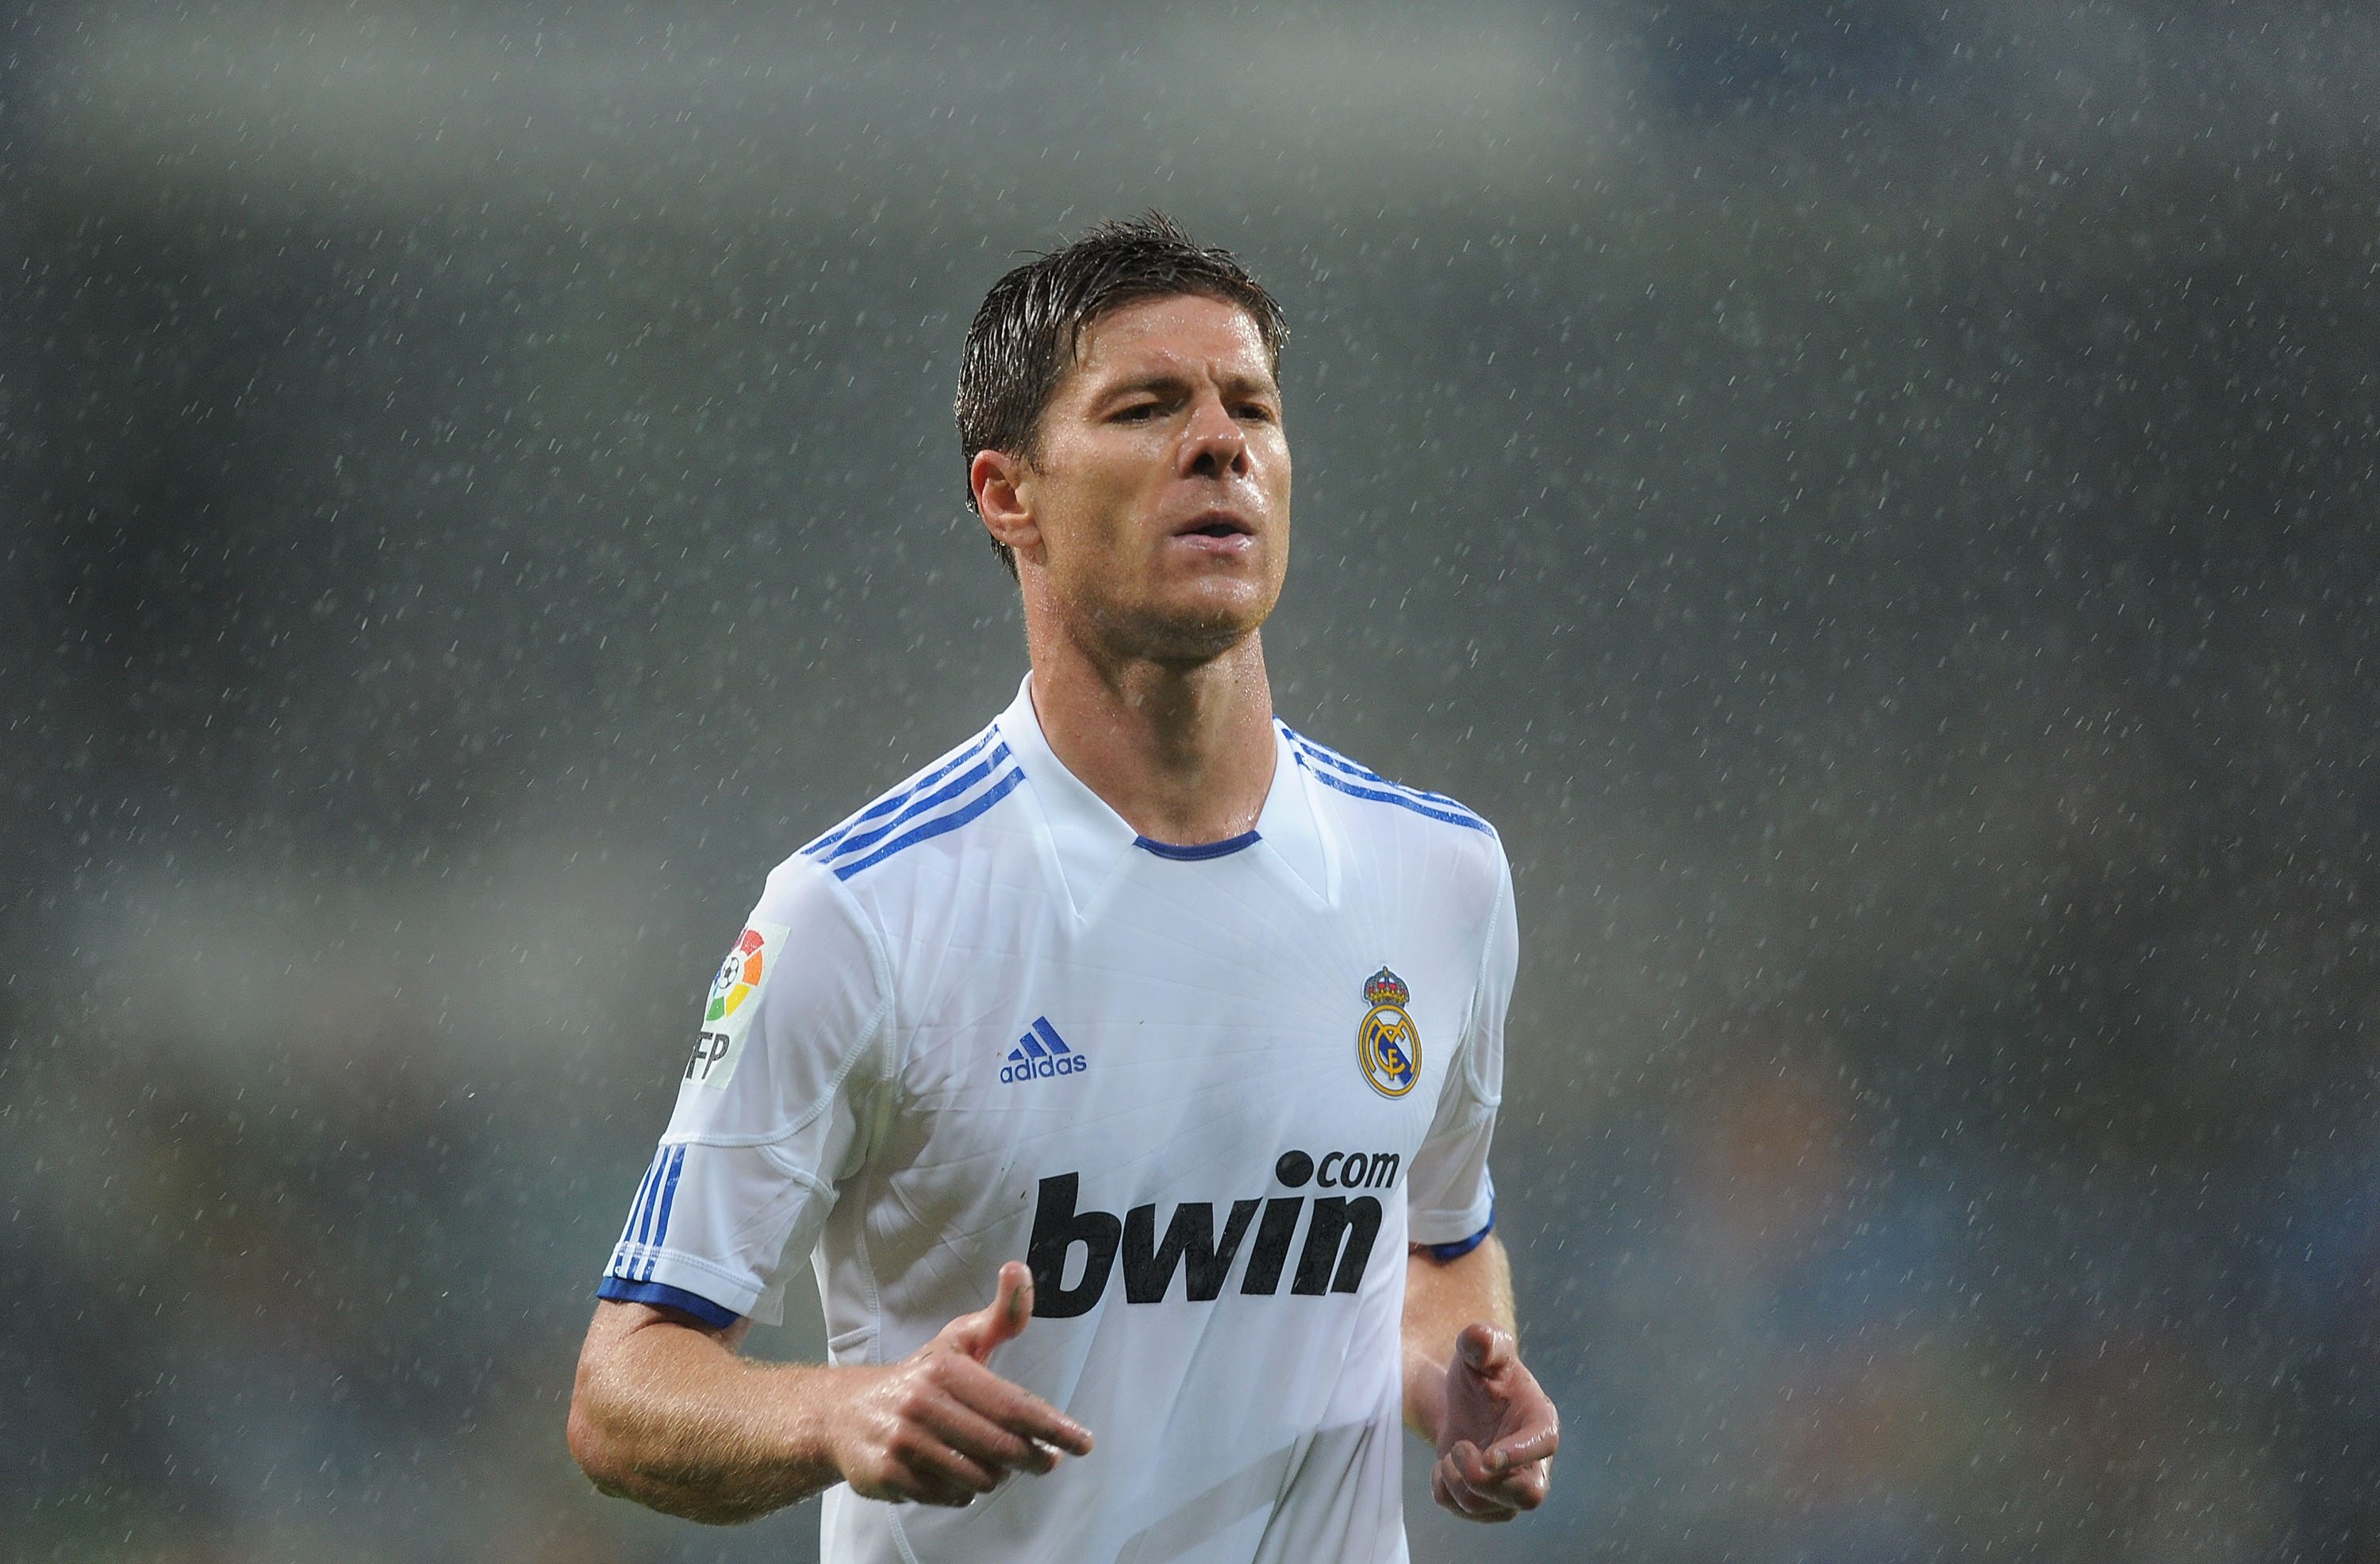 MADRID, SPAIN - OCTOBER 03:  Xabi Alonso of Real Madrid goes to take a corner kick during the La Liga match between Real Madrid and Deportivo La Coruna  at Estadio Santiago Bernabeu on October 3, 2010 in Madrid, Spain.  (Photo by Denis Doyle/Getty Images)